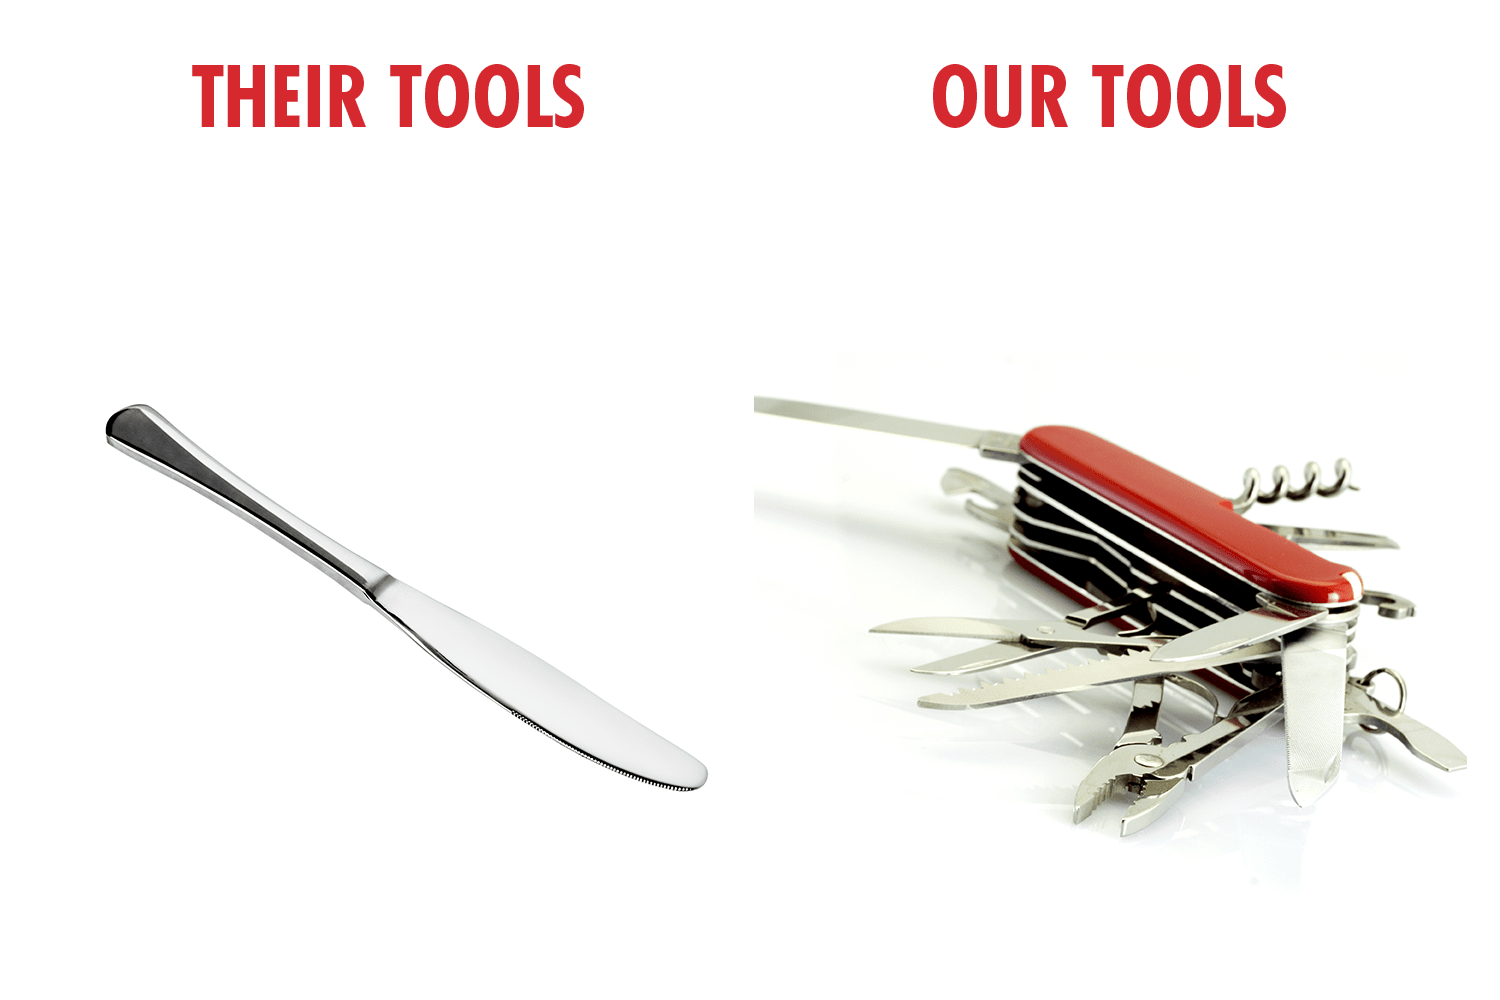 their tools vs our tools